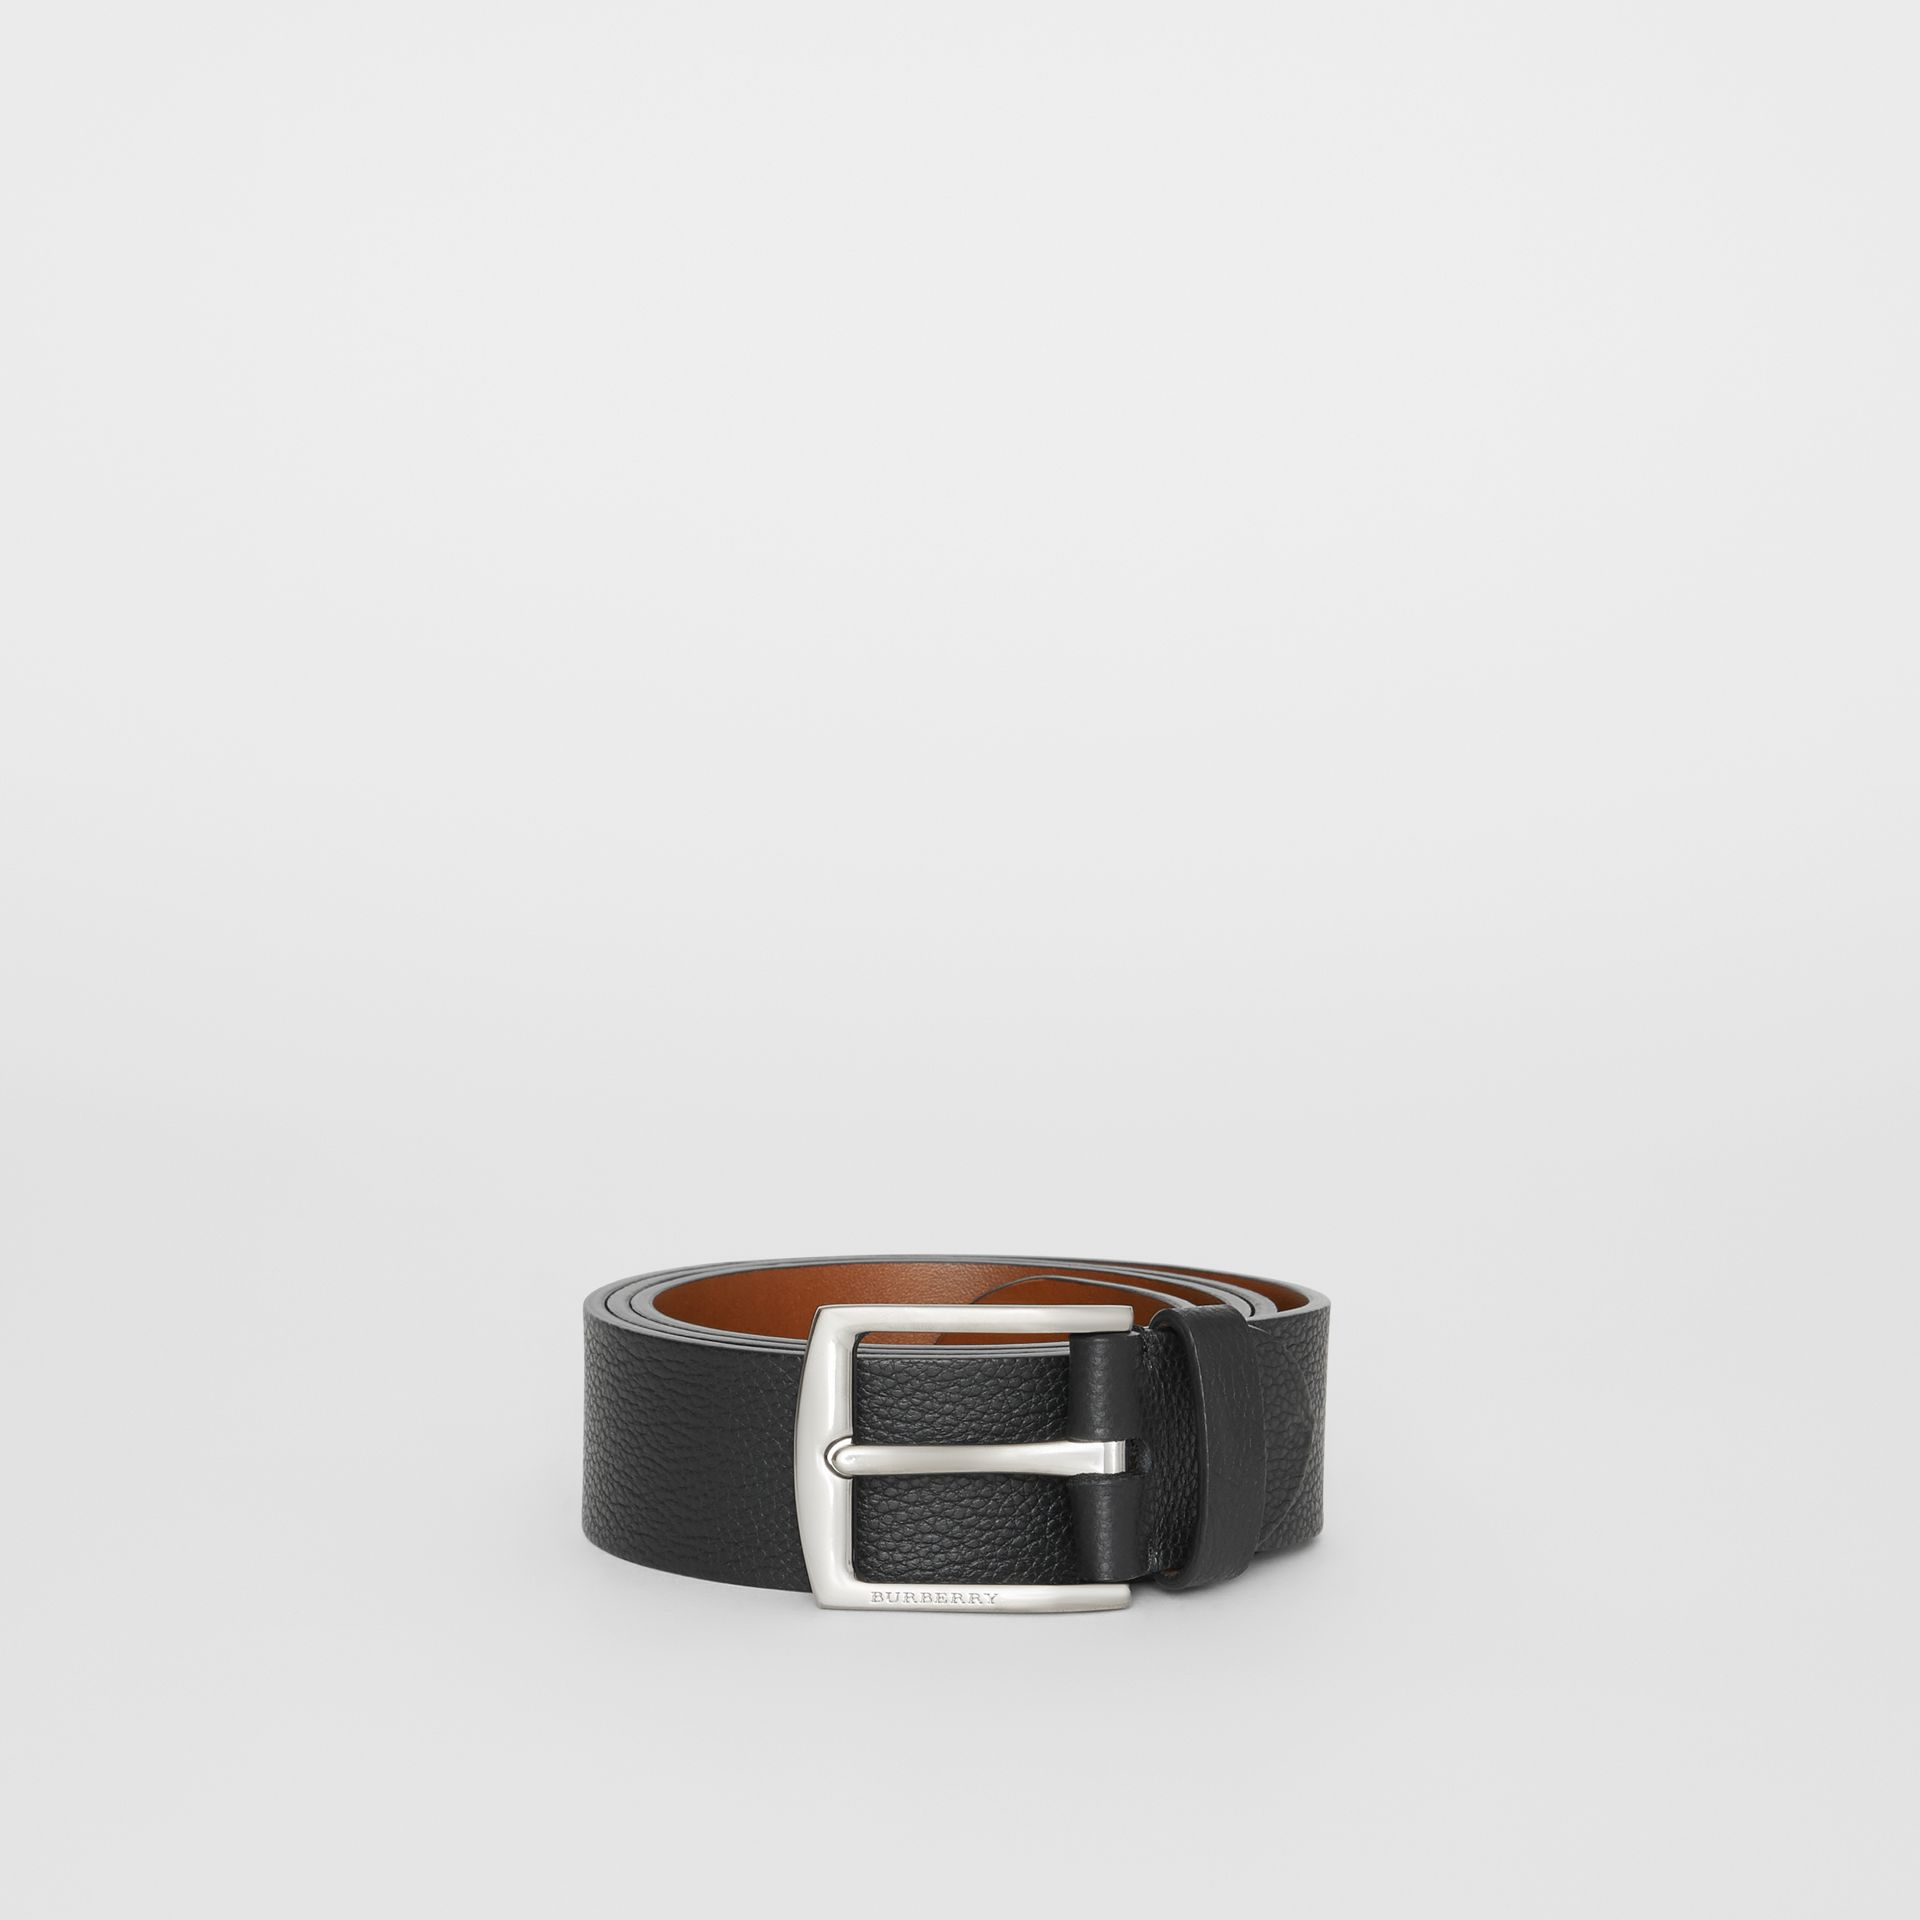 Grainy Leather Belt in Black - Men | Burberry Australia - gallery image 3